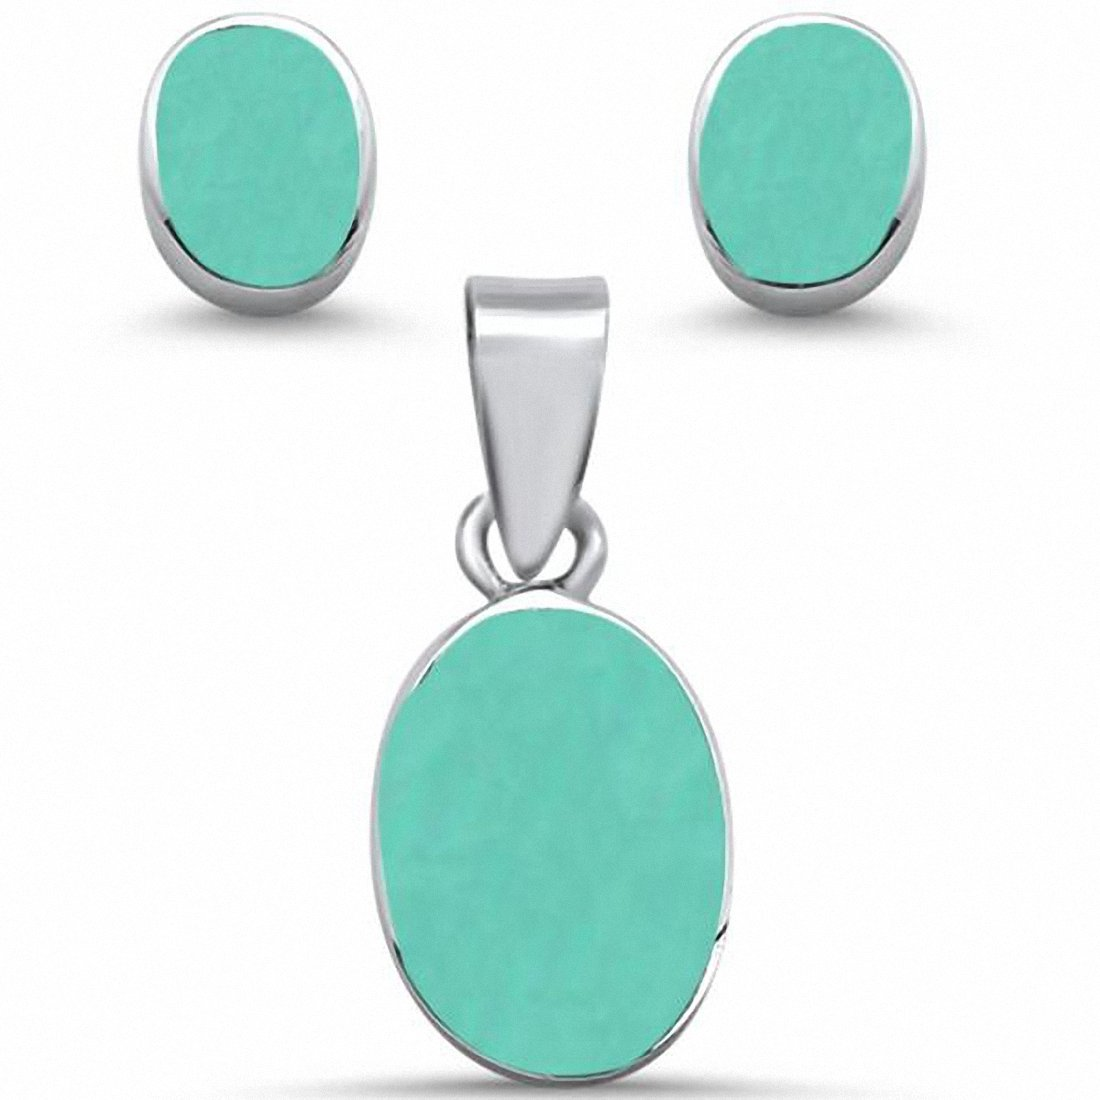 Oval Jewelry Set Simulated Stone 925 Sterling Silver Choose Color